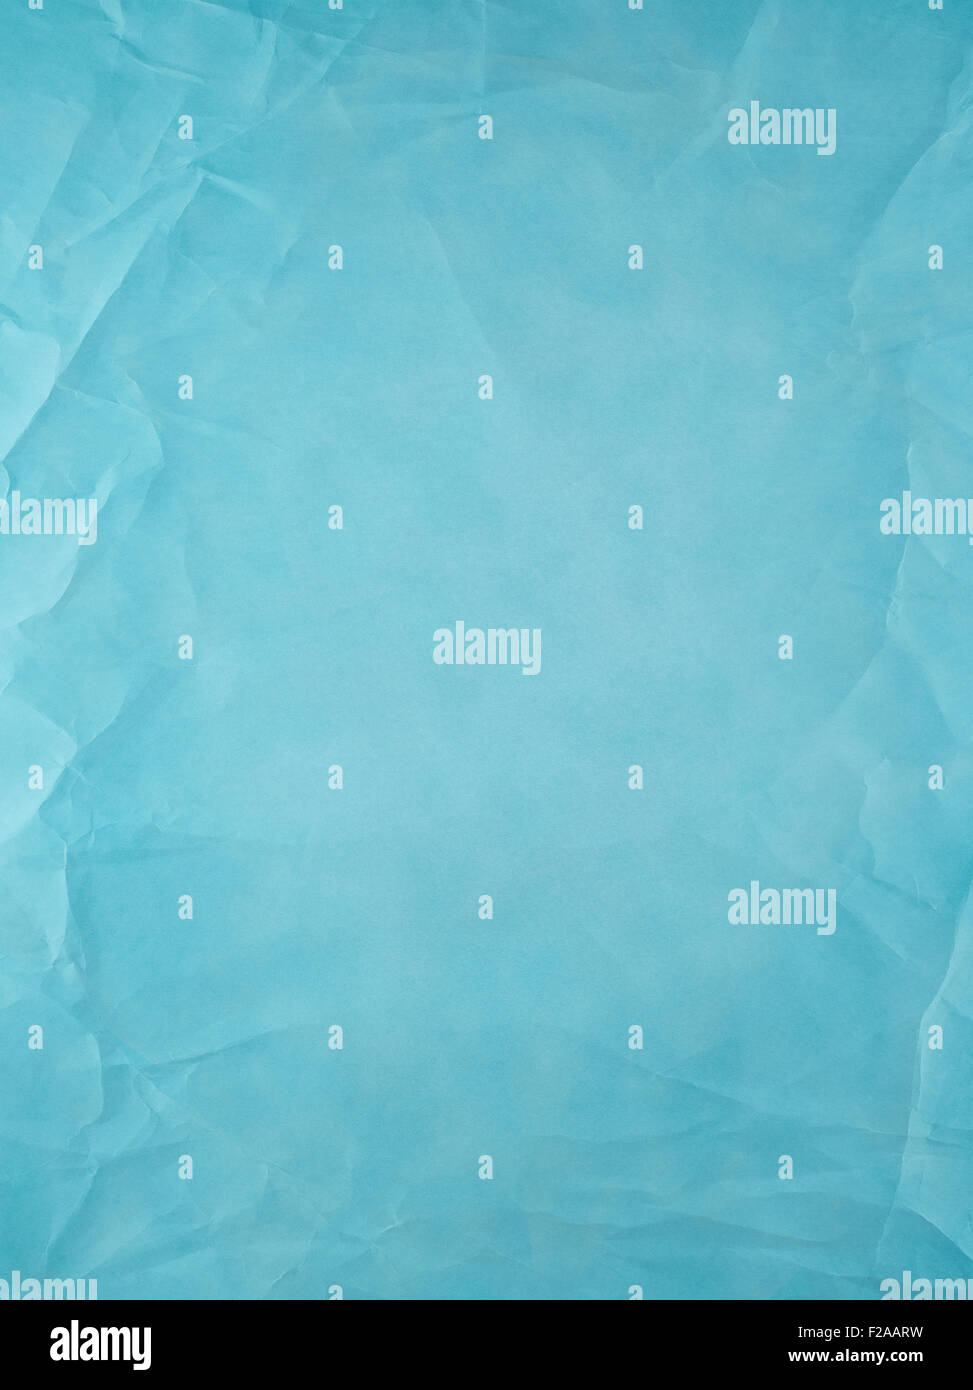 Turquoise old type paper, creases and wrinkles. - Stock Image